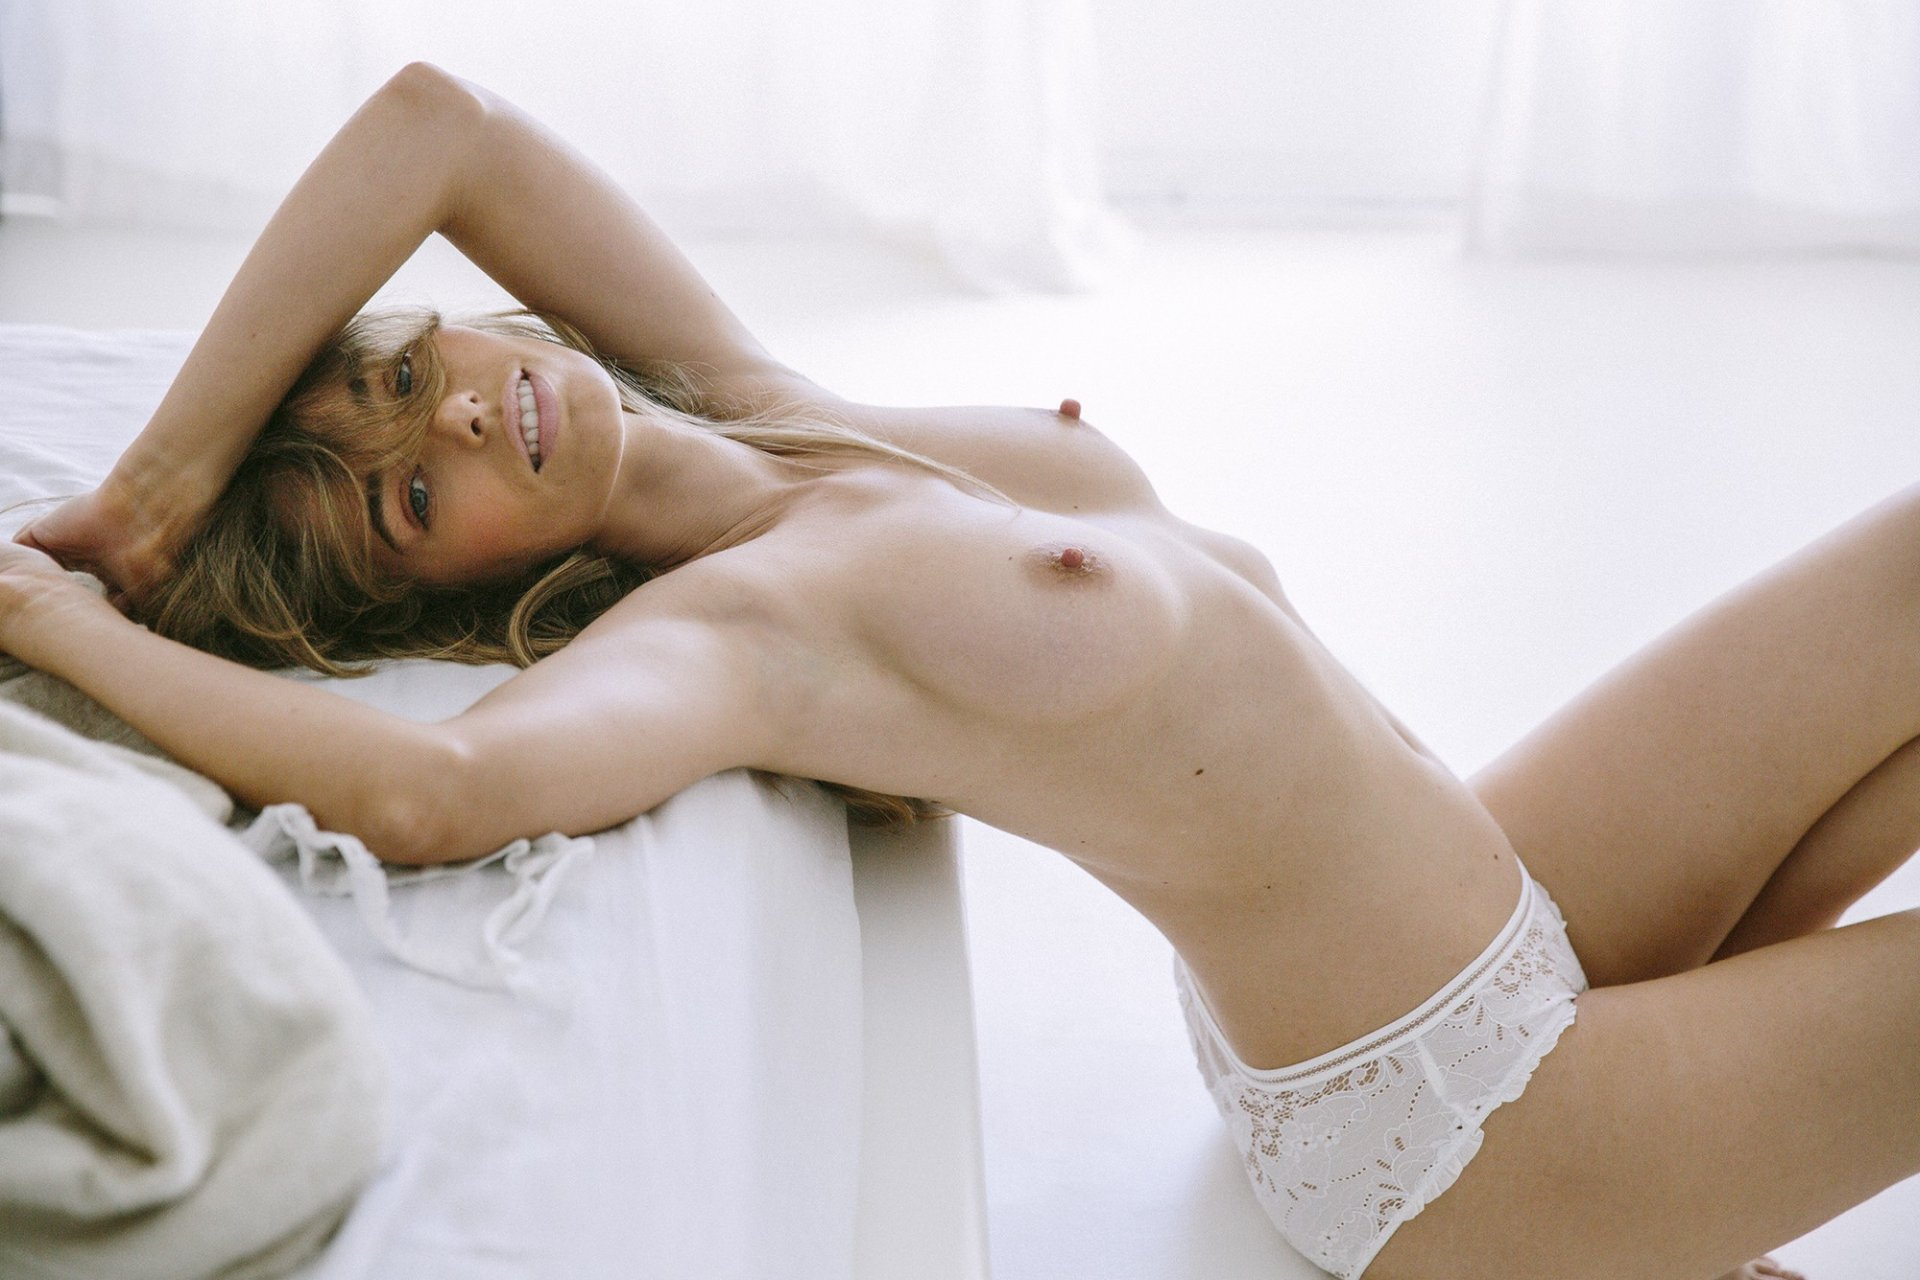 EXPOSED - Model page